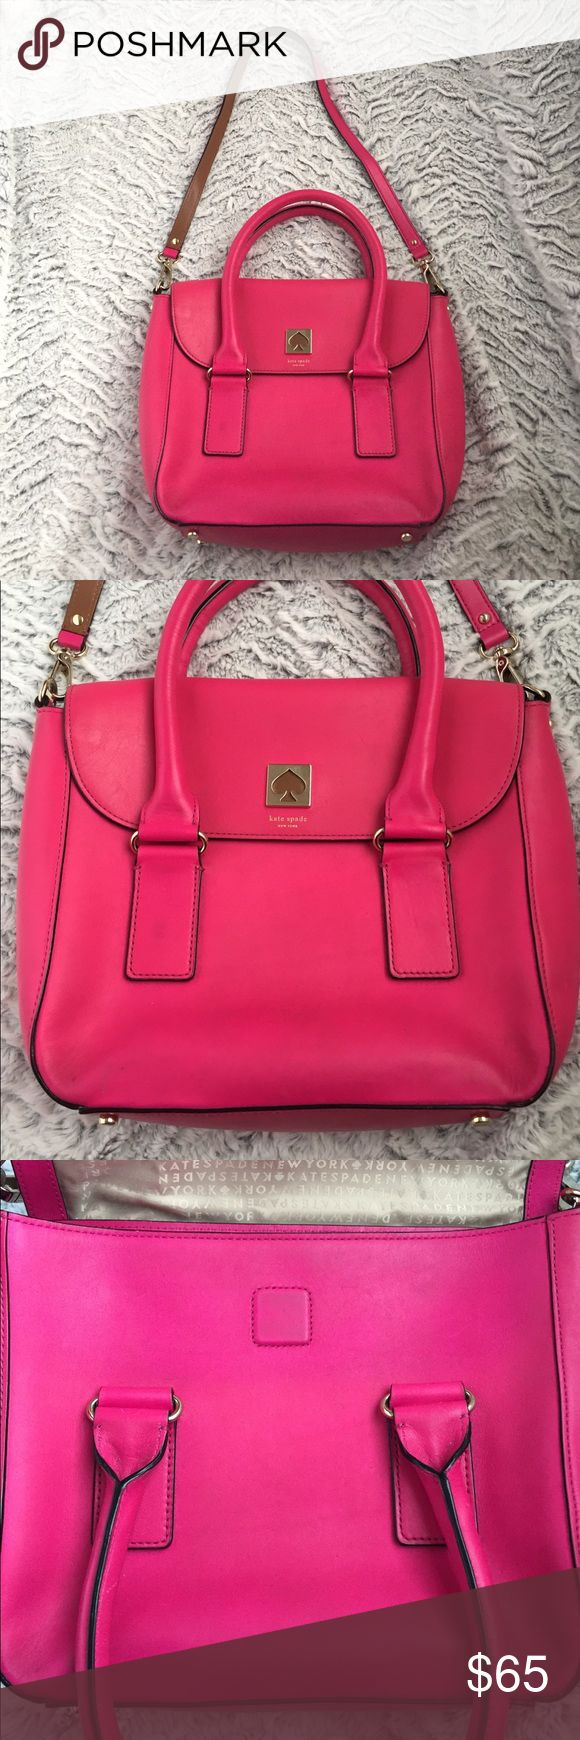 Kate spade Flo bond street hot pink bag purse Kate spade bond street hot pink colored. Flo style. Does show some wear on leather from typical usage. Inside is clean. Price reflects wear. kate spade Bags Shoulder Bags